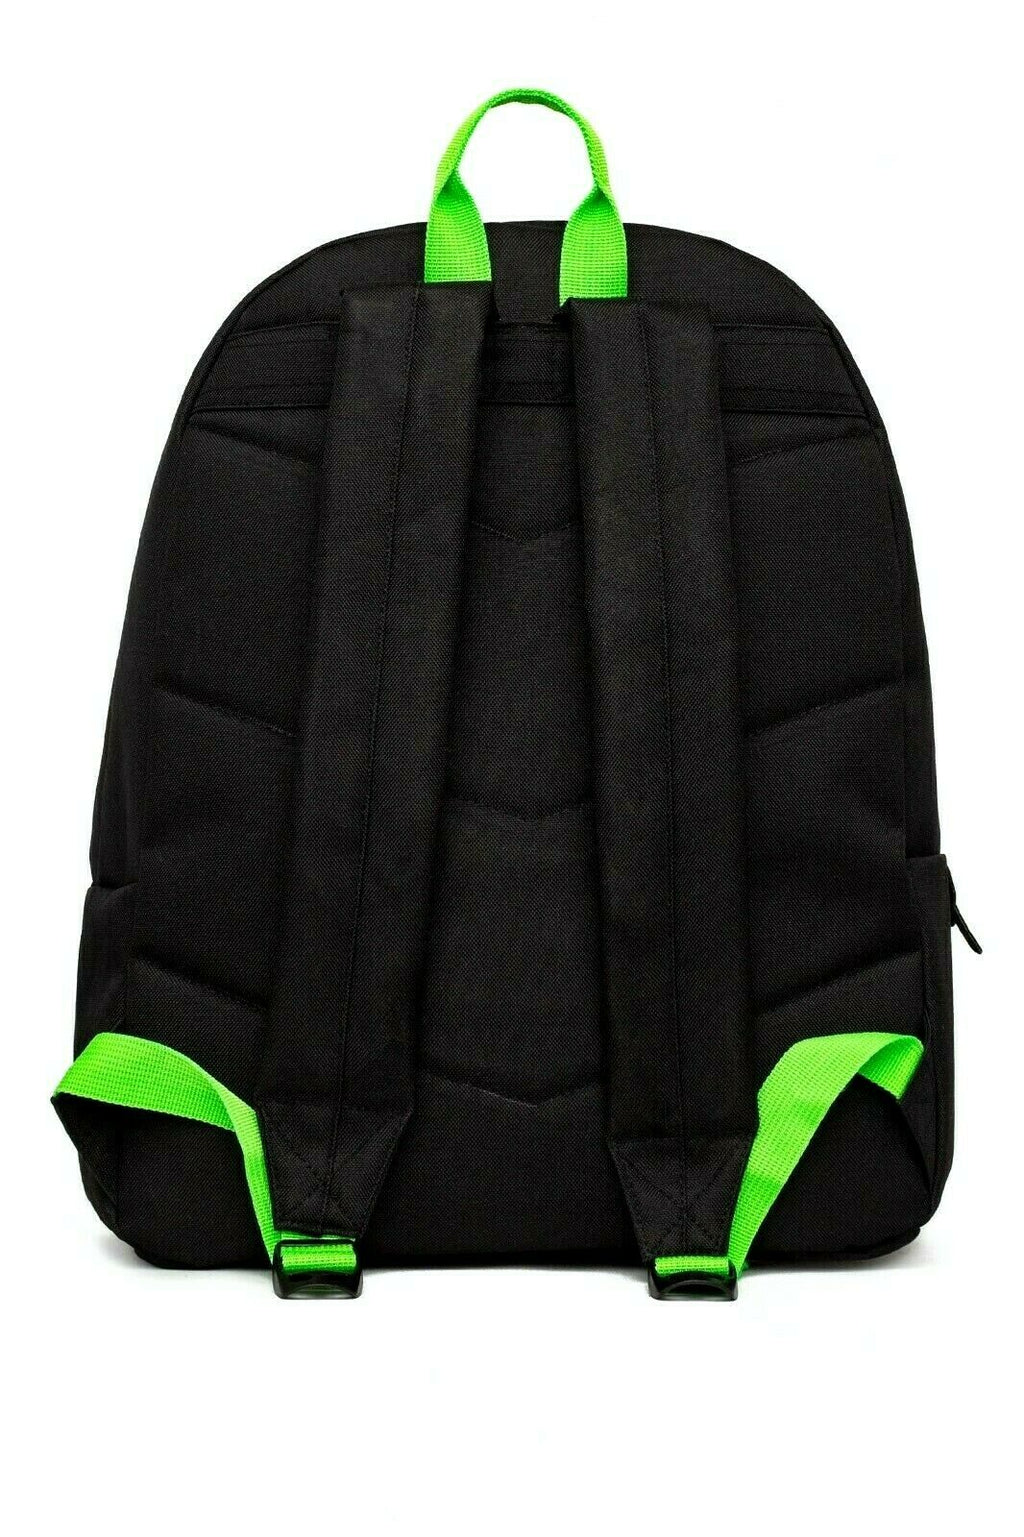 HYPE GREEN NEON FLASH BACKPACK RUCKSACK BAG - BLACK/NEON GREEN